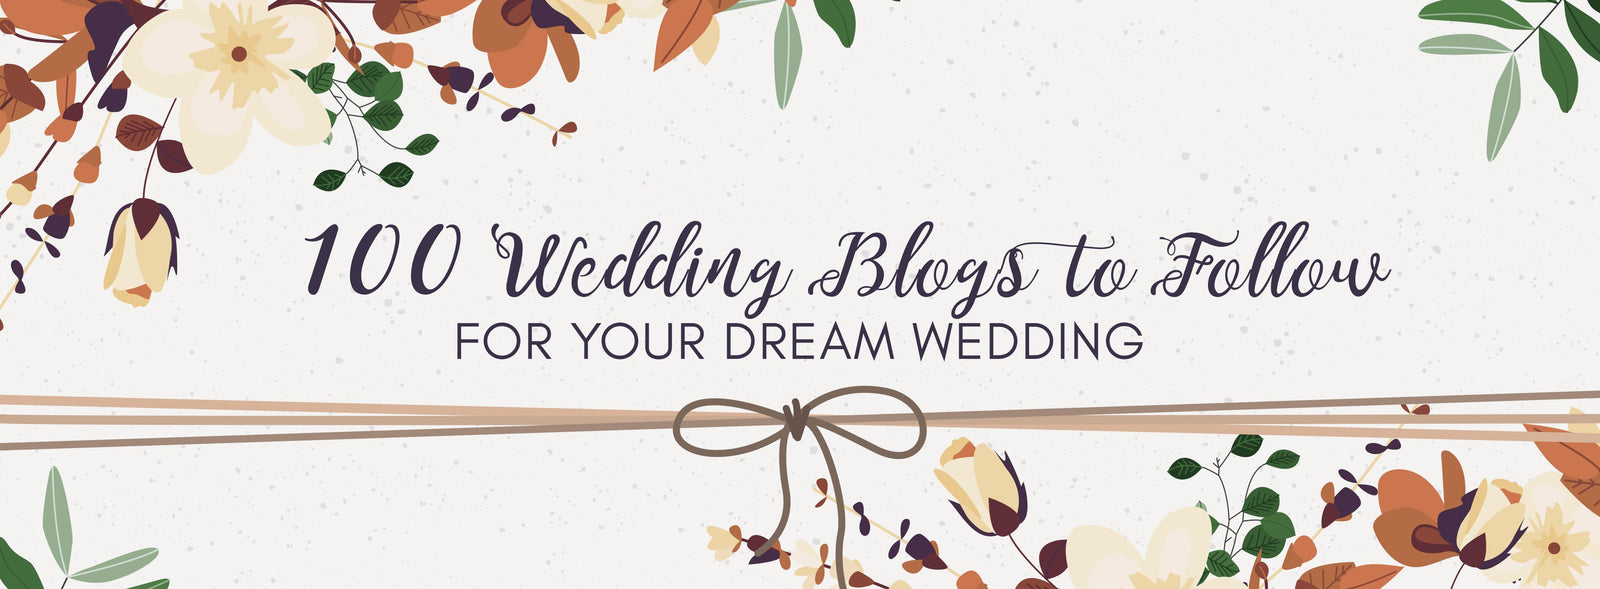 Top 100 Wedding Blogs to Follow for Your Dream Wedding - Save-On-Crafts